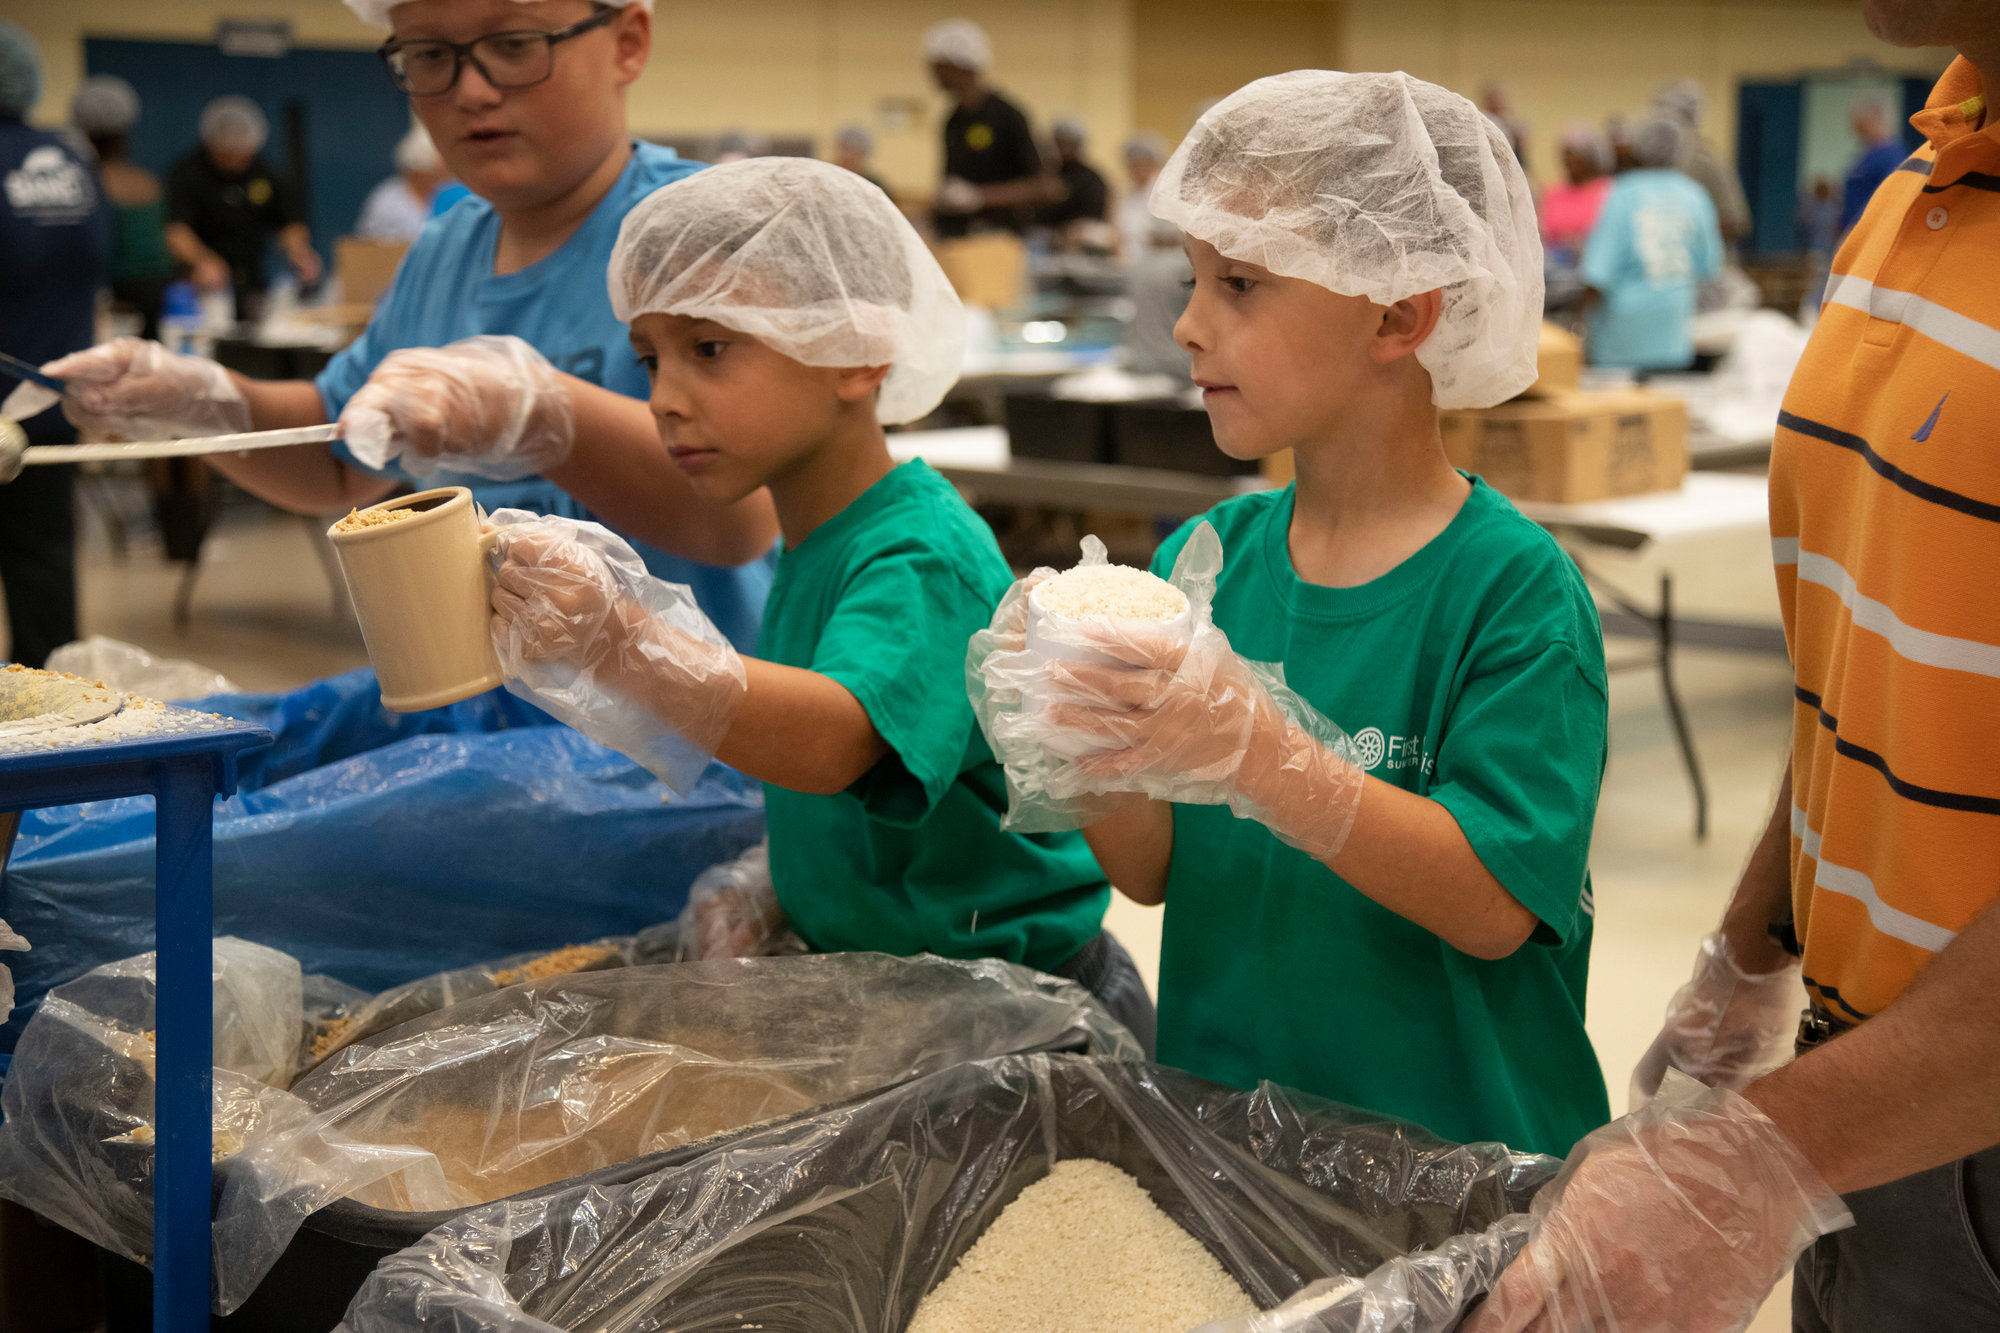 Sumter's Feed My Starving Children expands packing days, raises goal